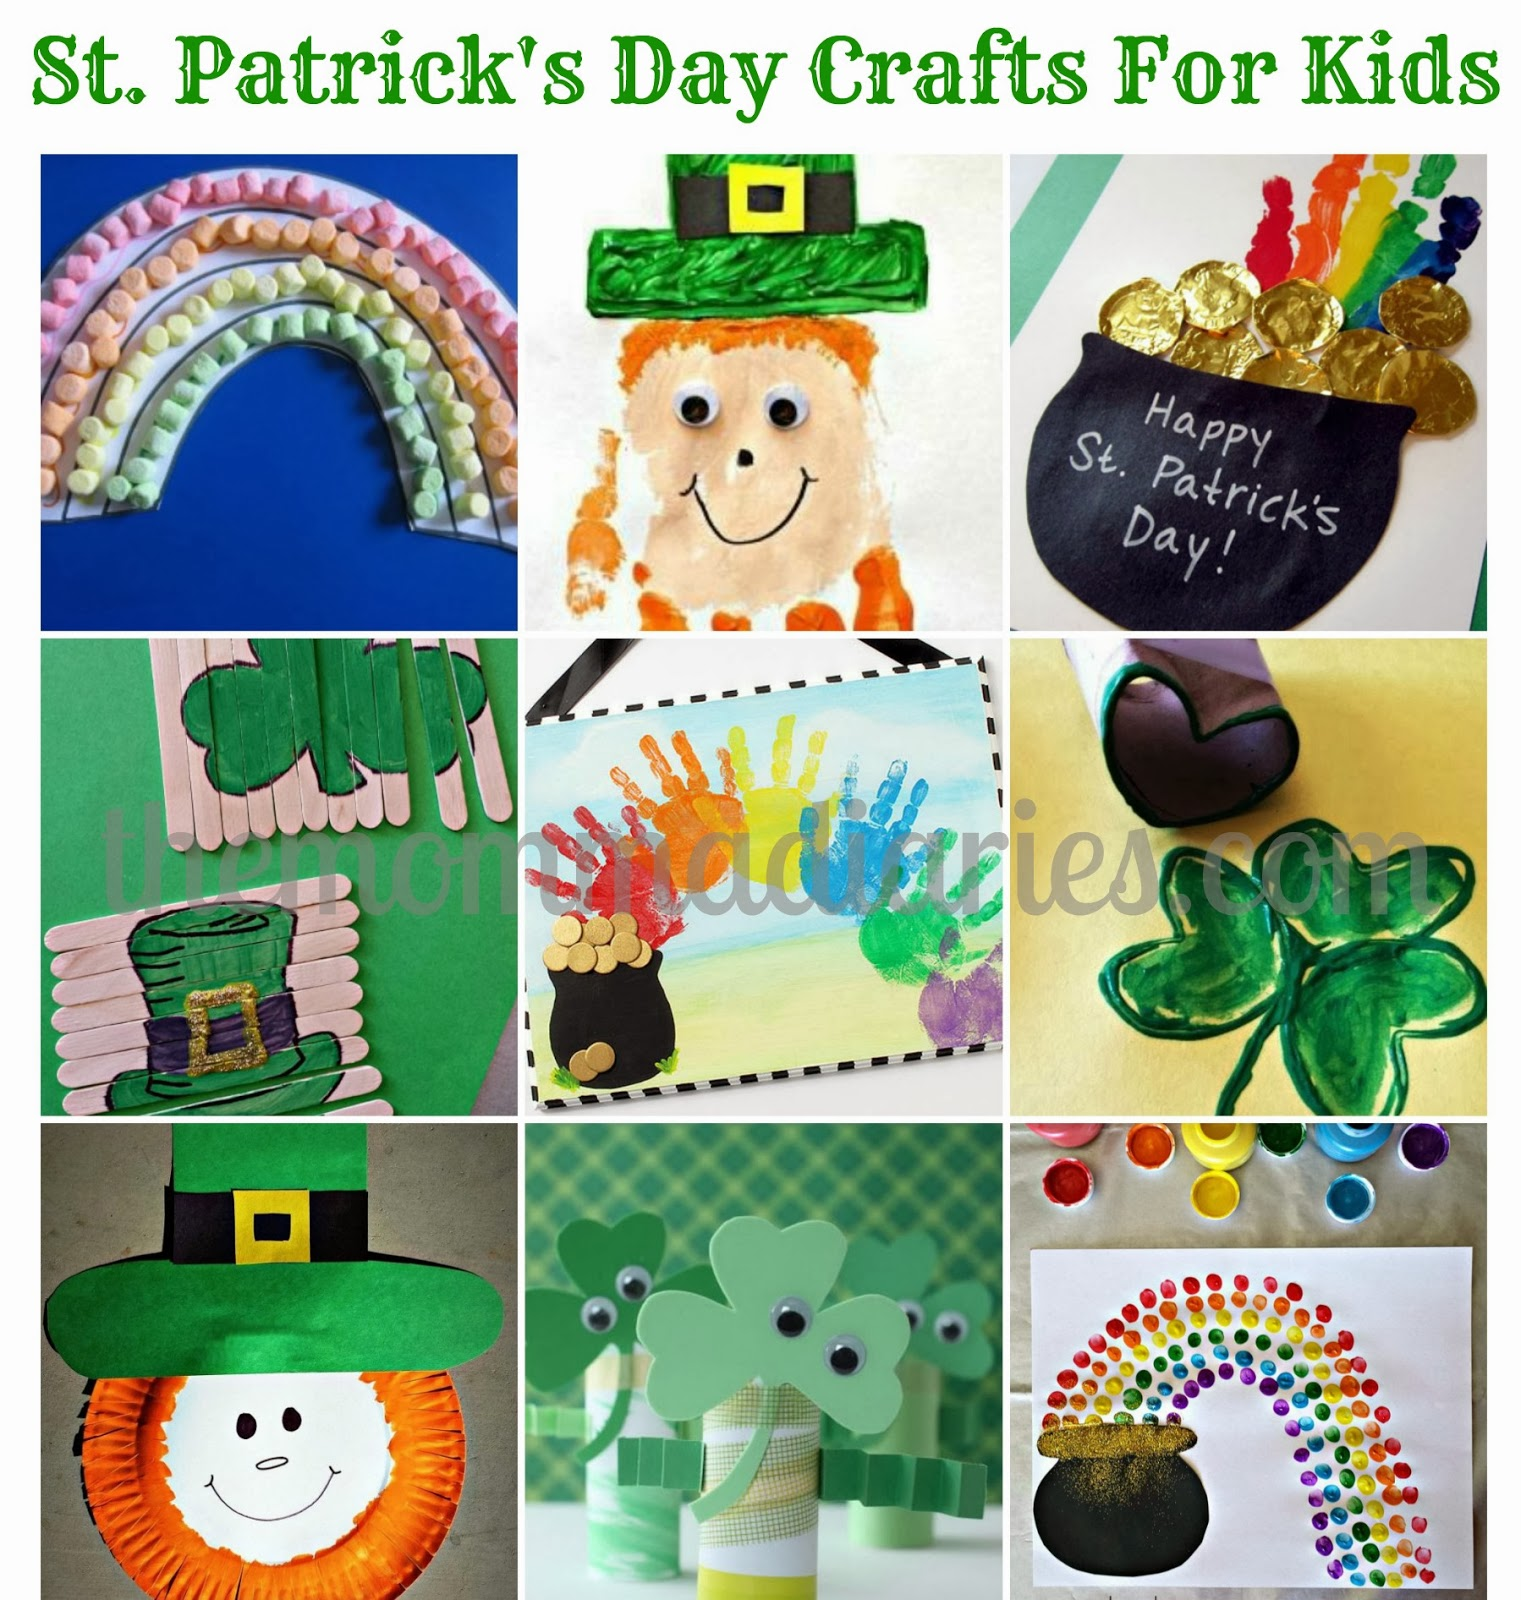 St. Patrick's Day Crafts For Kids | The Momma Diaries